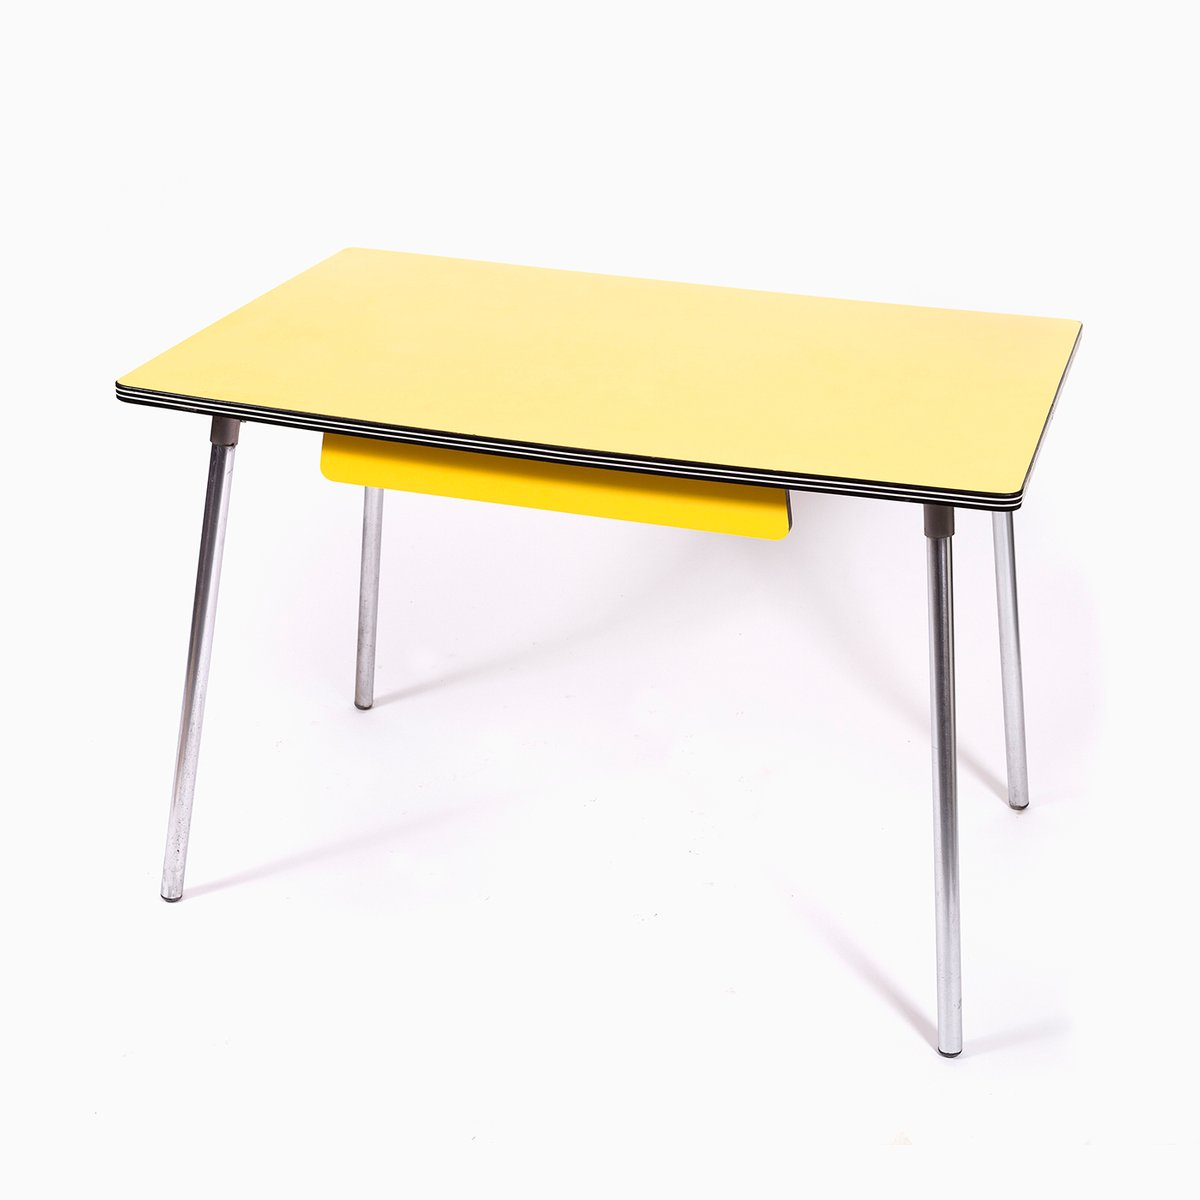 table de salle manger vintage en formica jaune avec. Black Bedroom Furniture Sets. Home Design Ideas